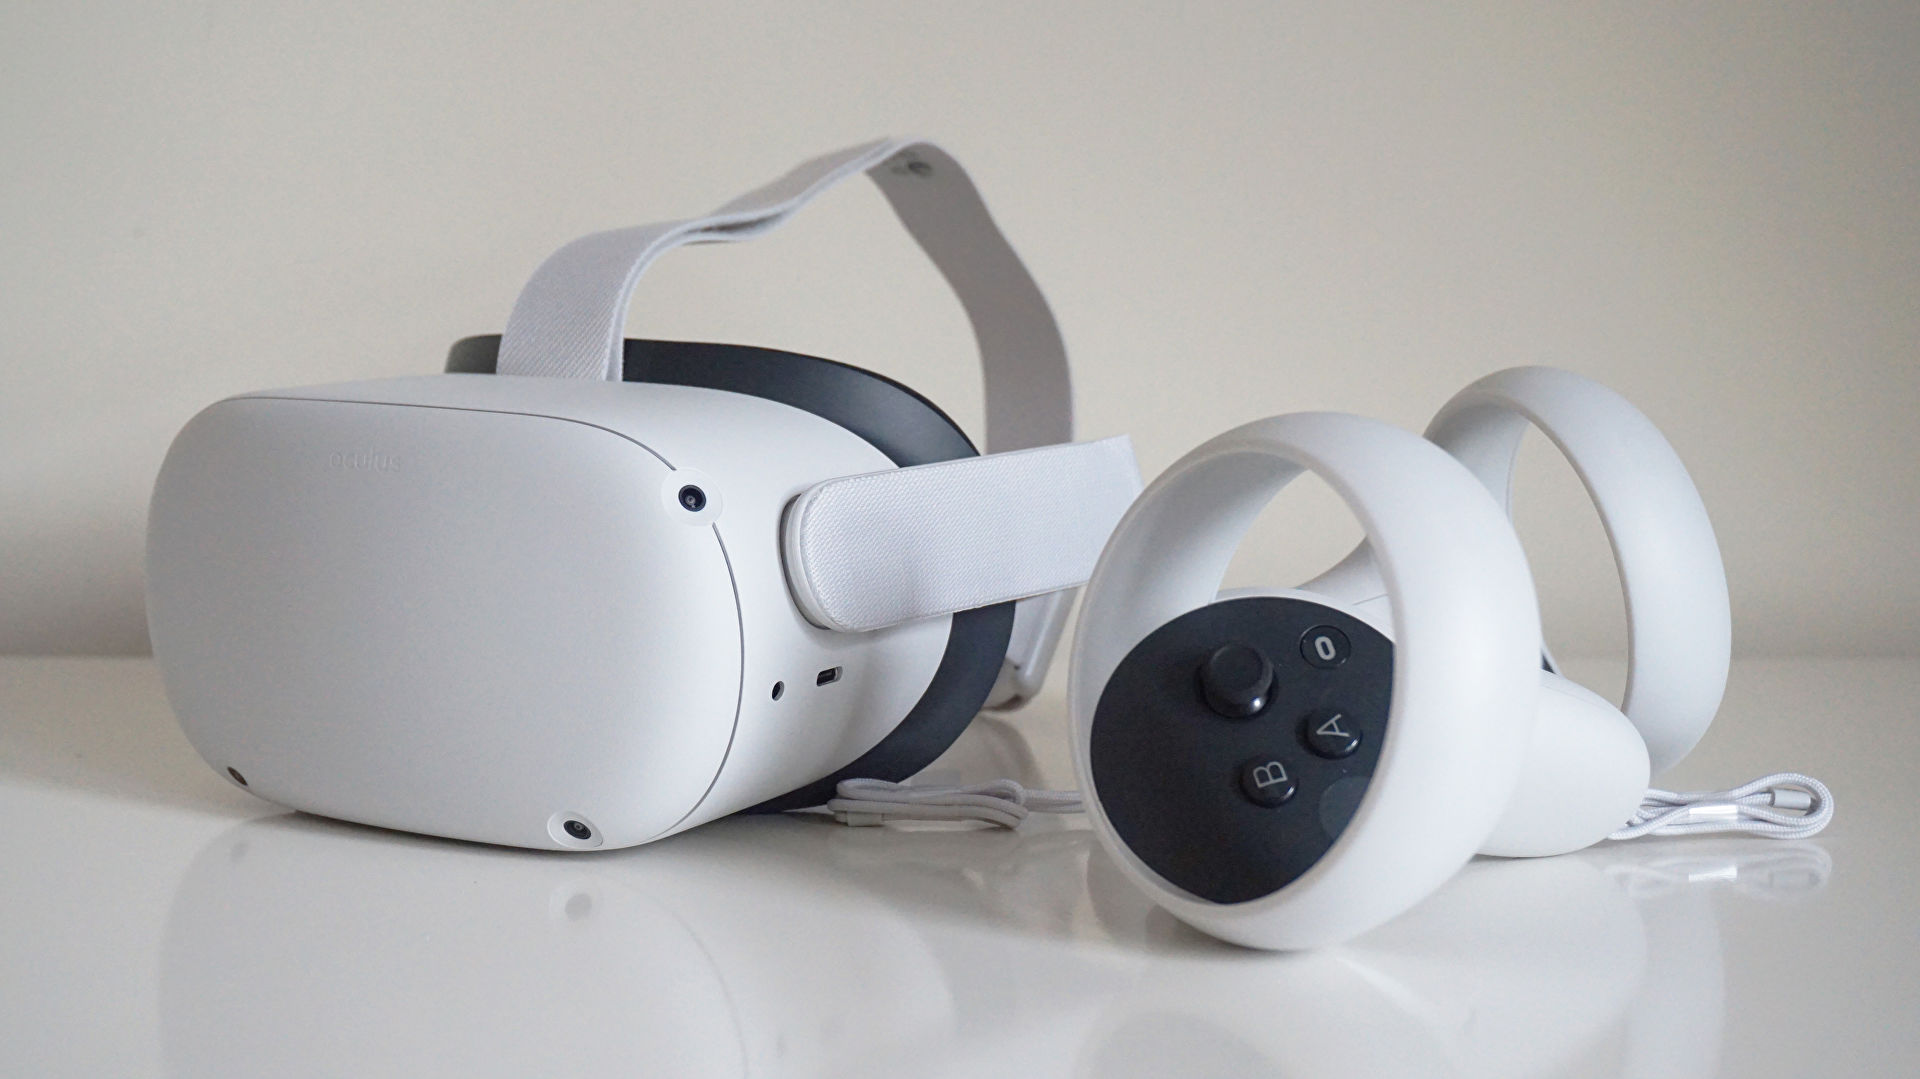 Was Facebook's Acquisition of Oculus a Bargain?